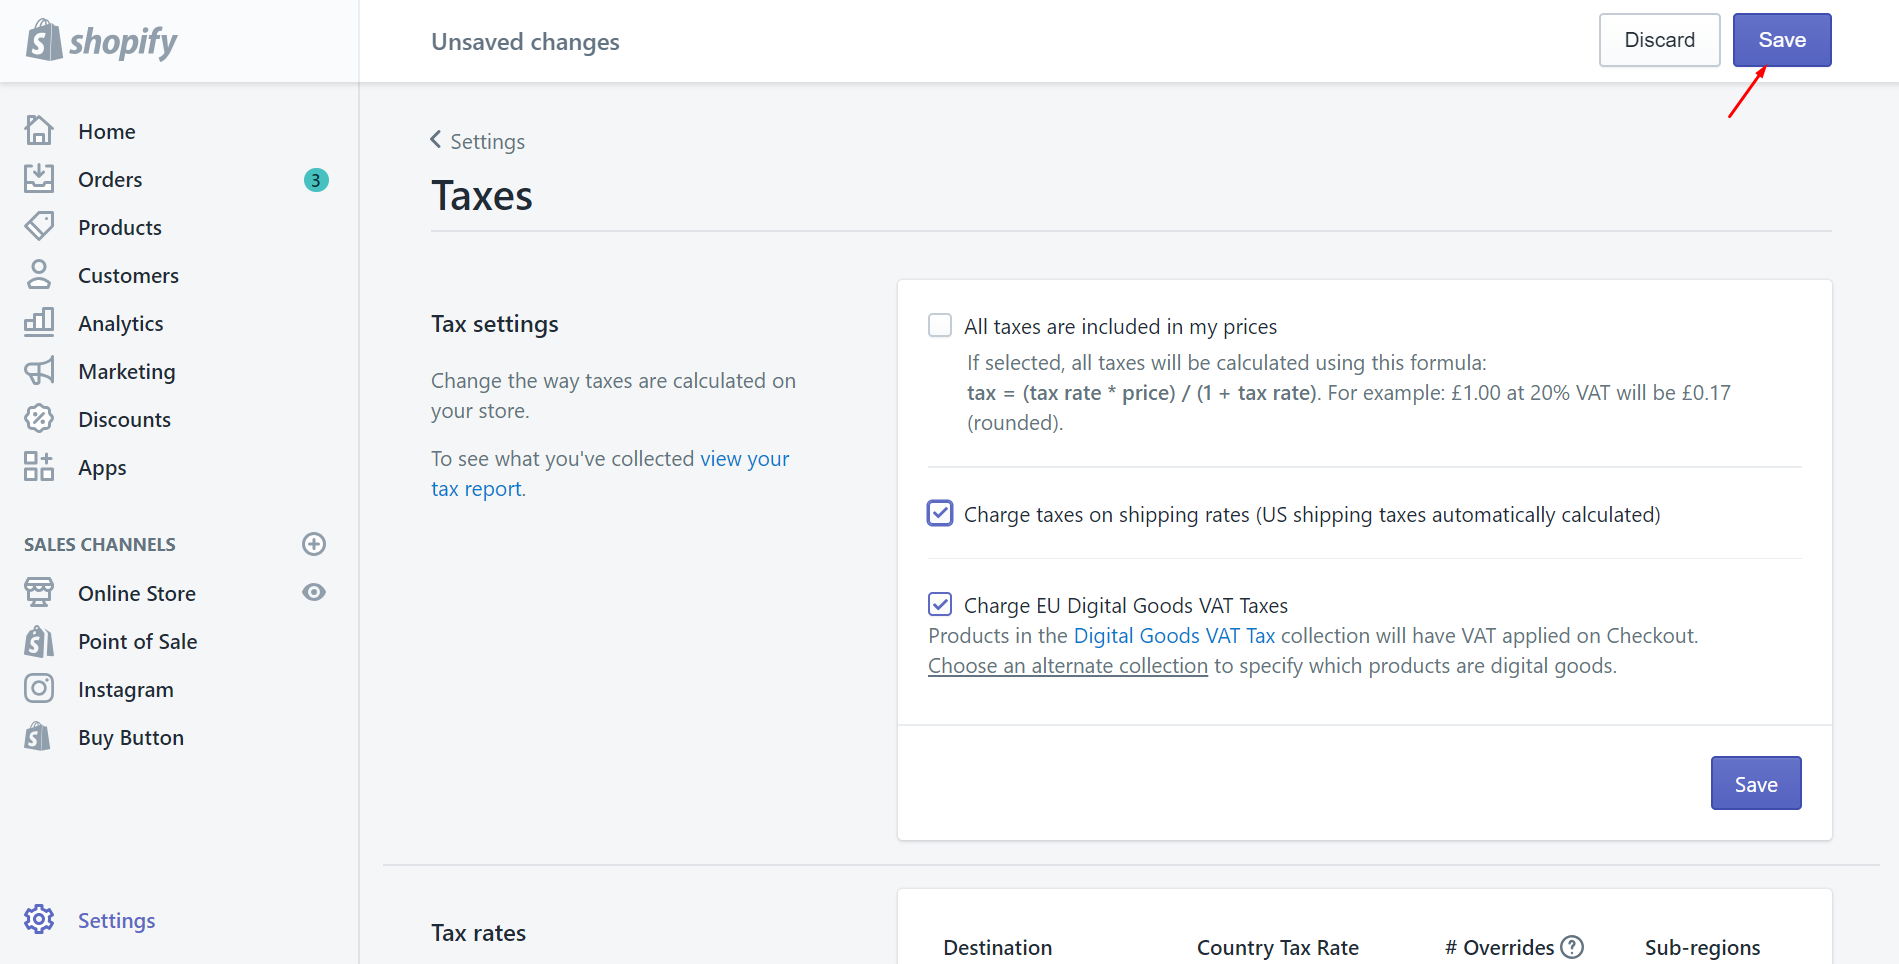 How to charge taxes on shipping rates